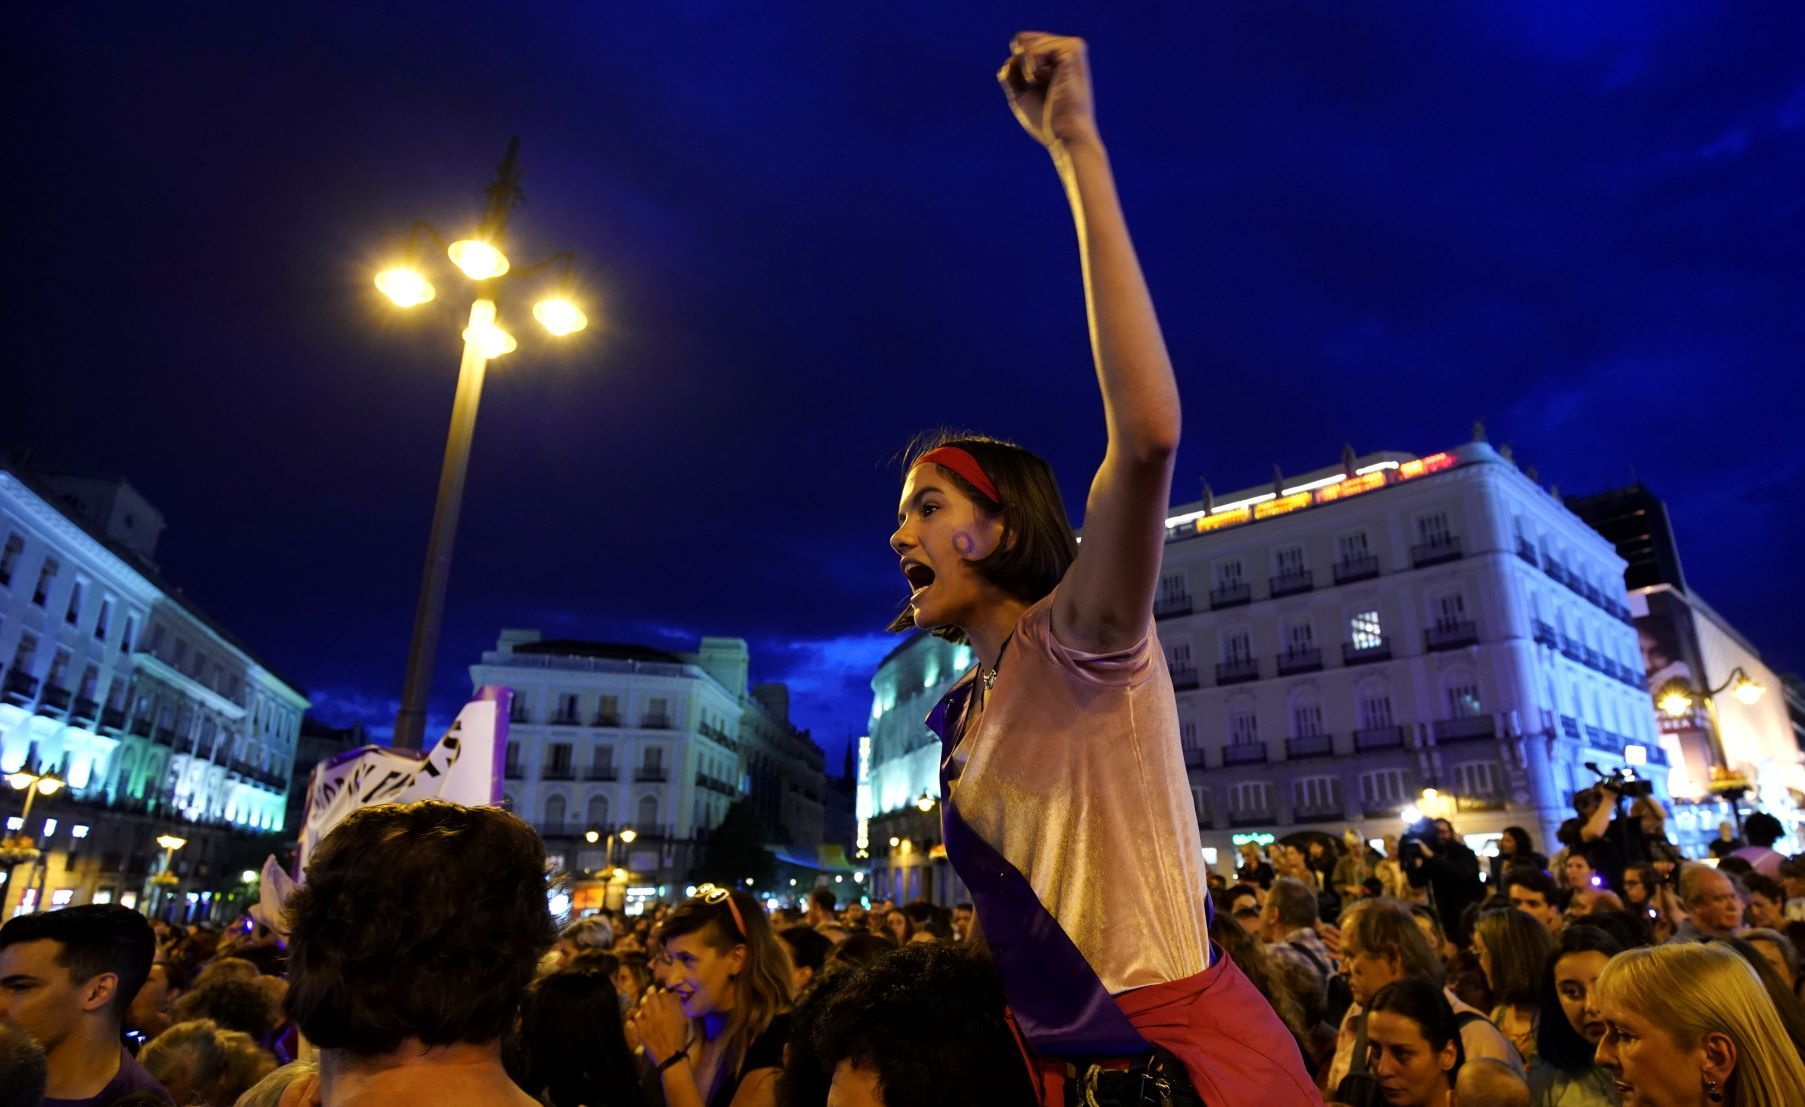 2019-09-20T185500Z_1114457061_RC1A468A5480_RTRMADP_3_SPAIN-PROTEST-WOMEN